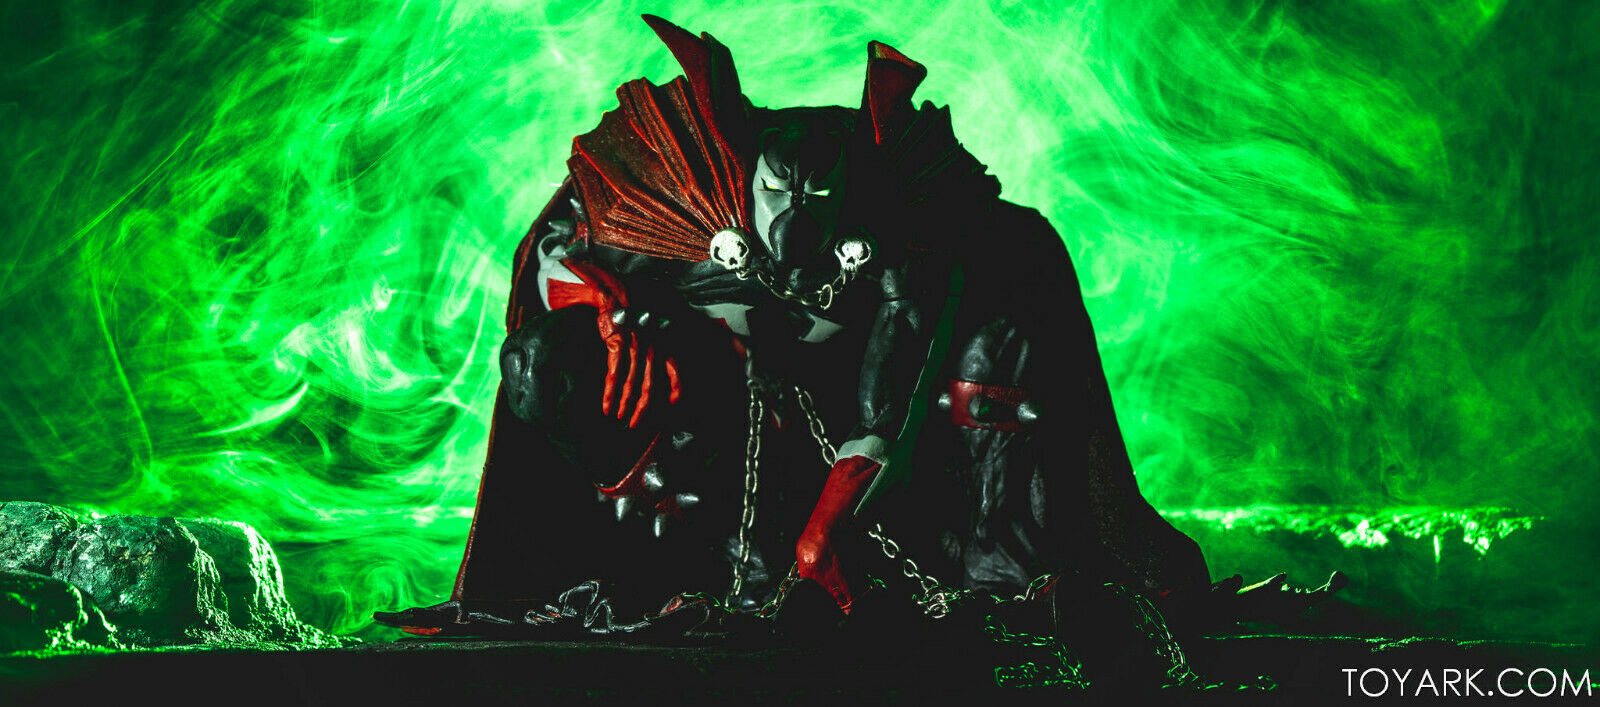 MOC SPAWN SERIES 26 ART OF SPAWN SPAWN ACTION FIGURE MCFARLANE ISSUE 8 COVER ART